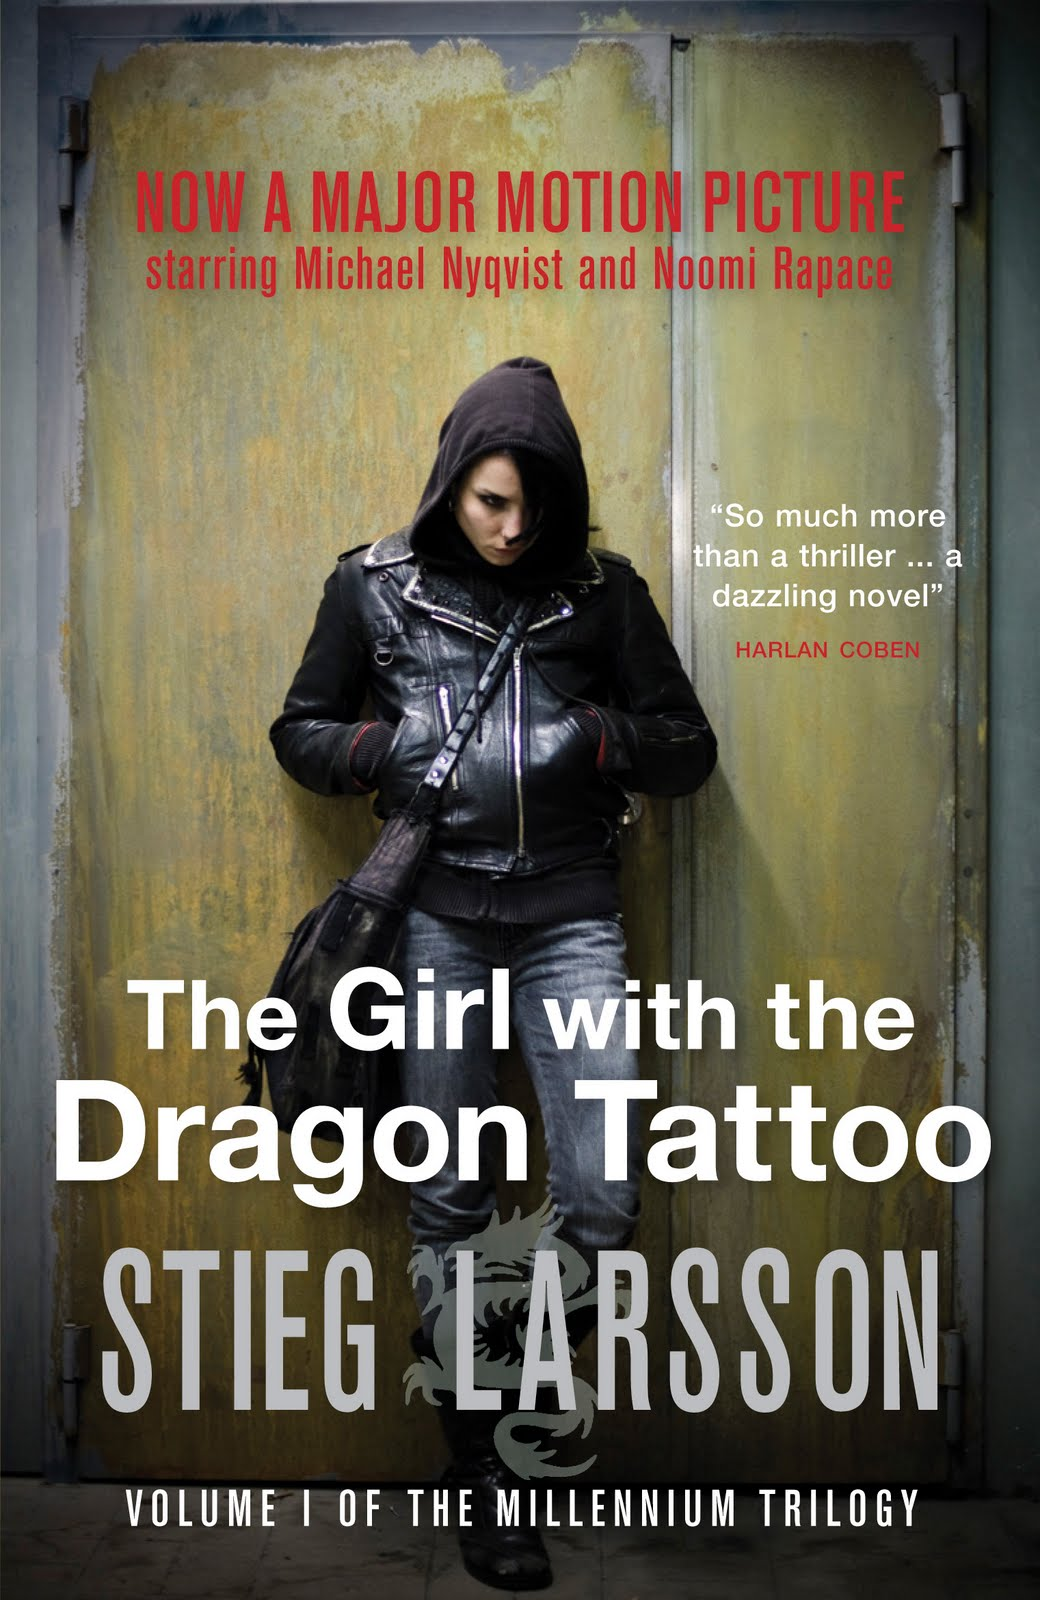 vvb32 reads: The Girl With The Dragon Tattoo (2009)